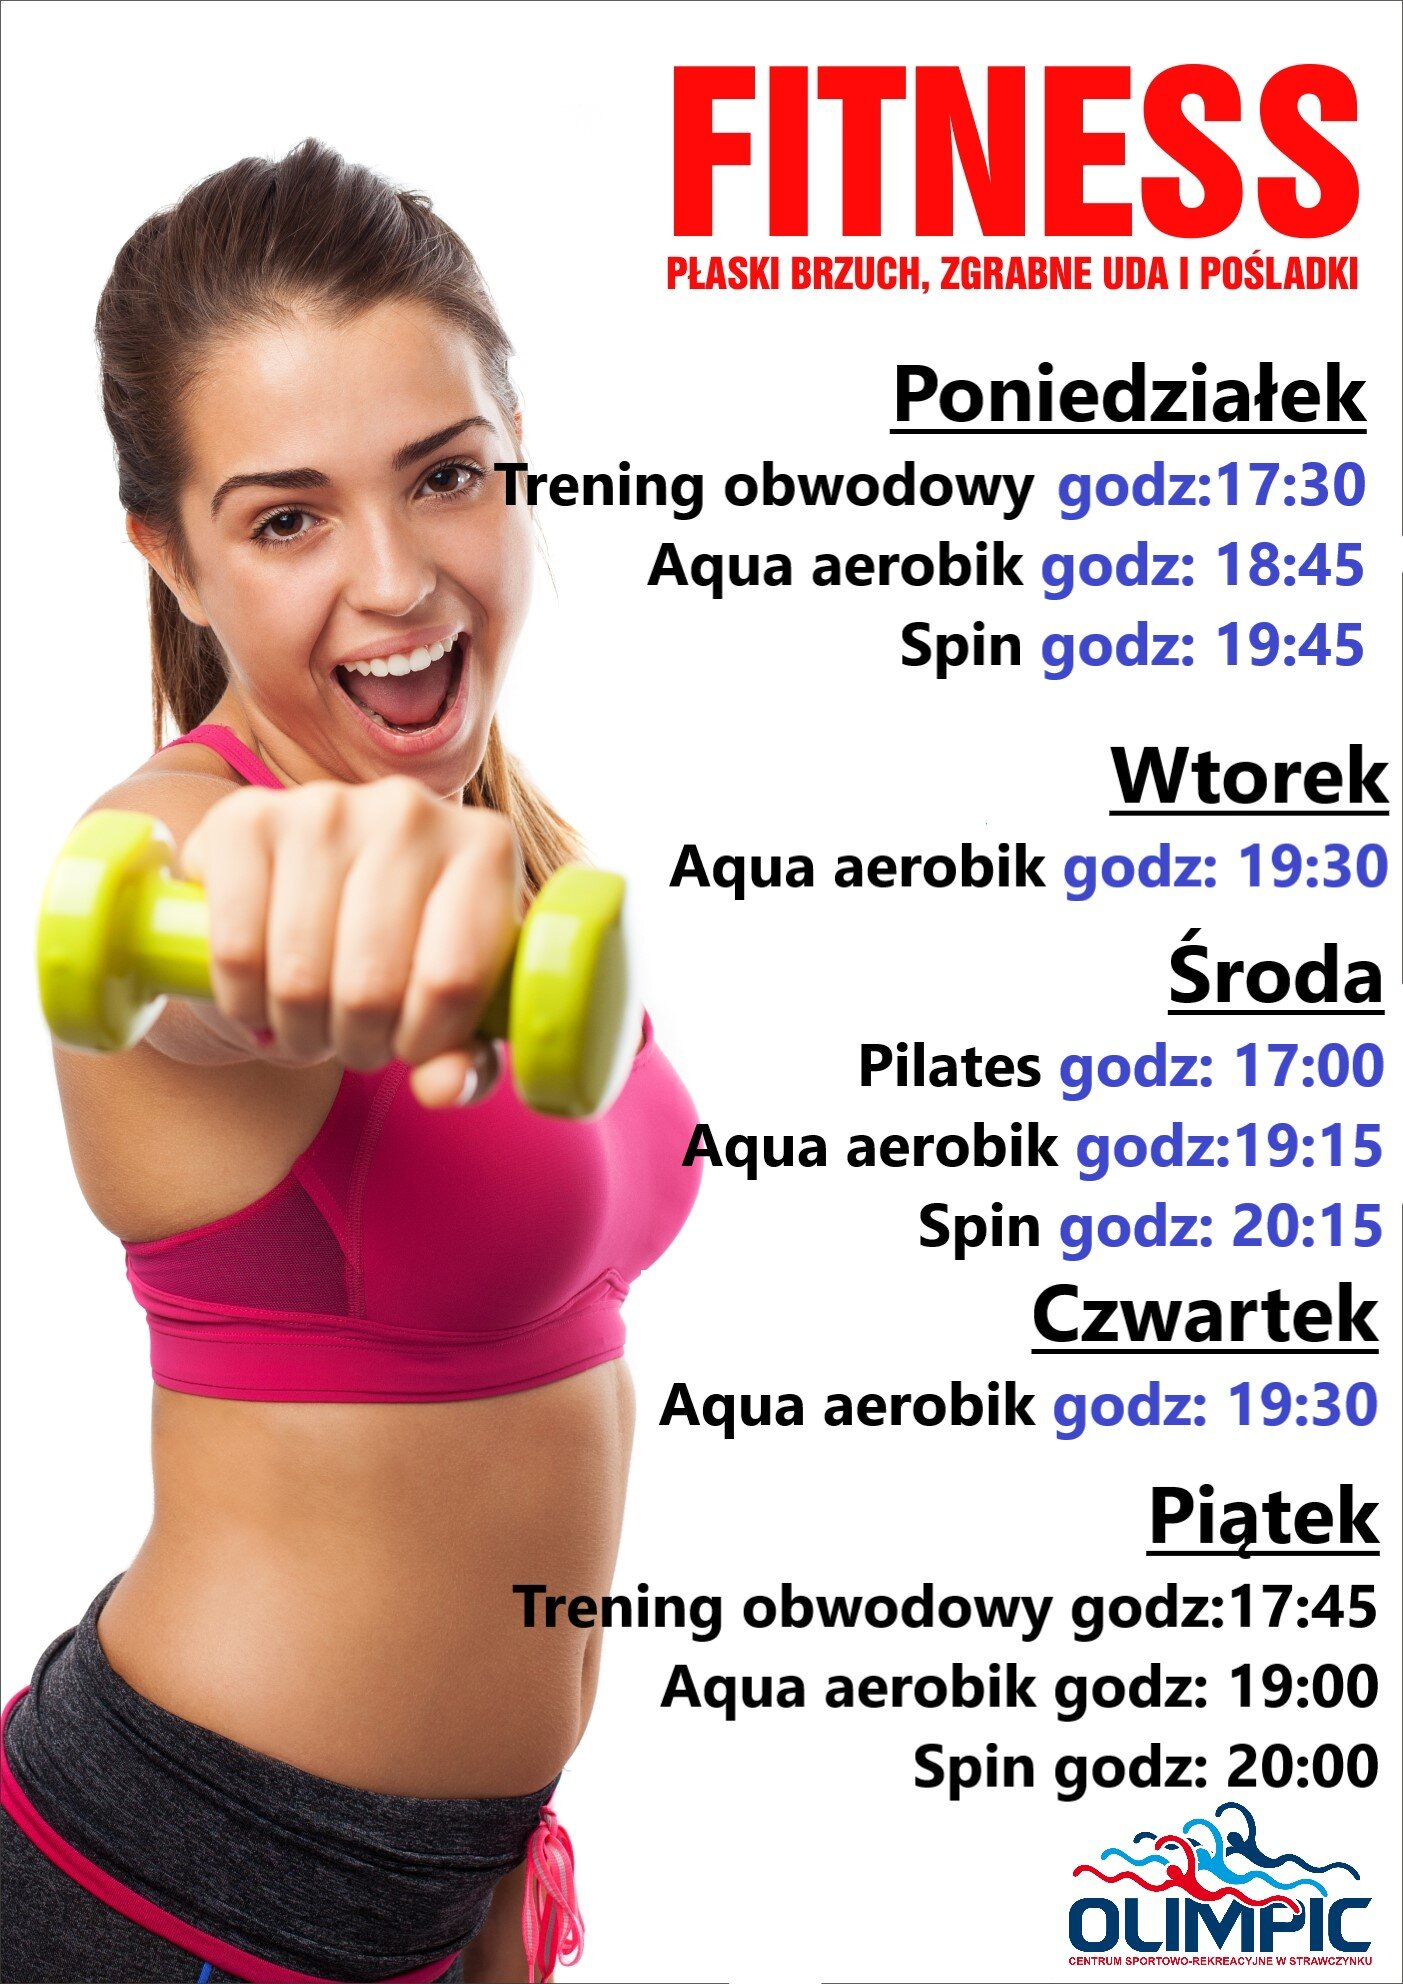 FITNESS plakat na strone olimpic